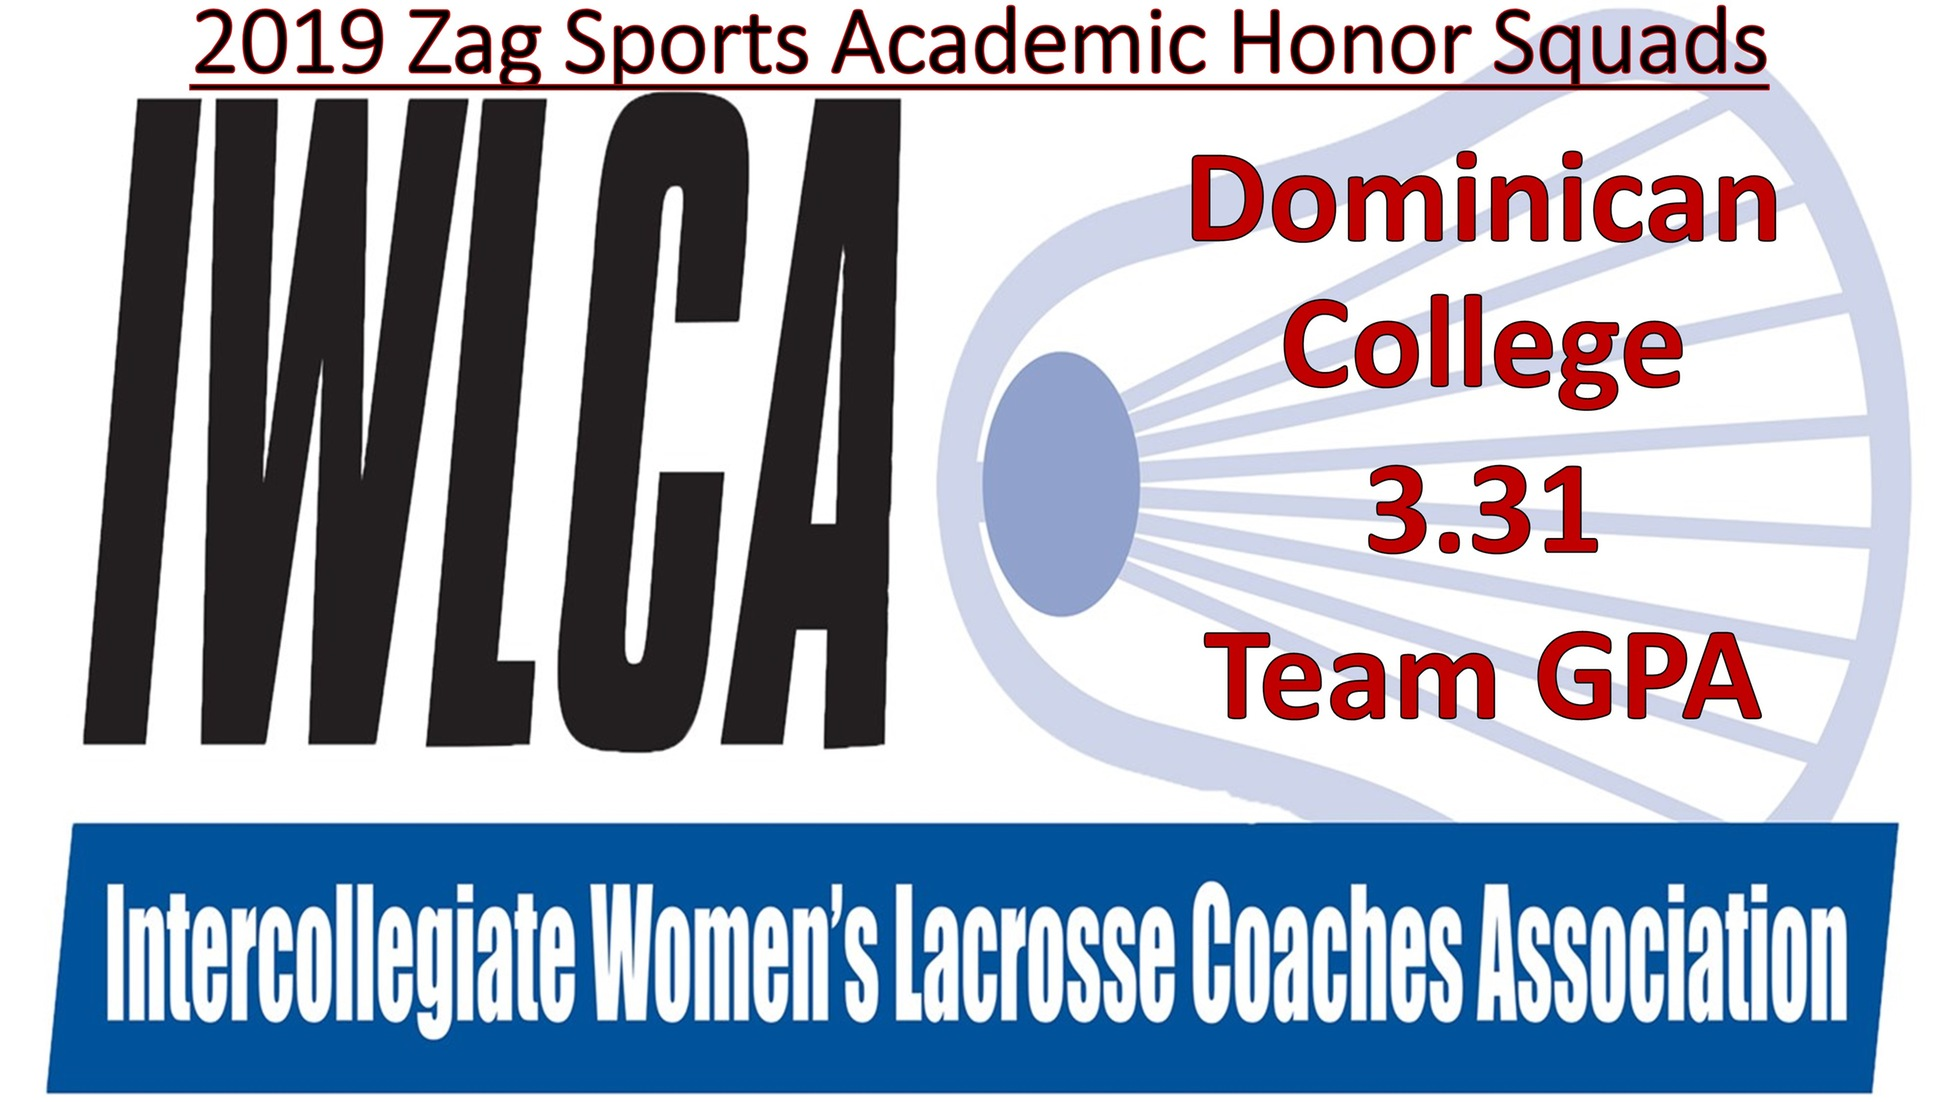 WOMEN'S LACROSSE NAMED TO 2019 ZAG SPORTS ACADEMIC HONOR SQUADS